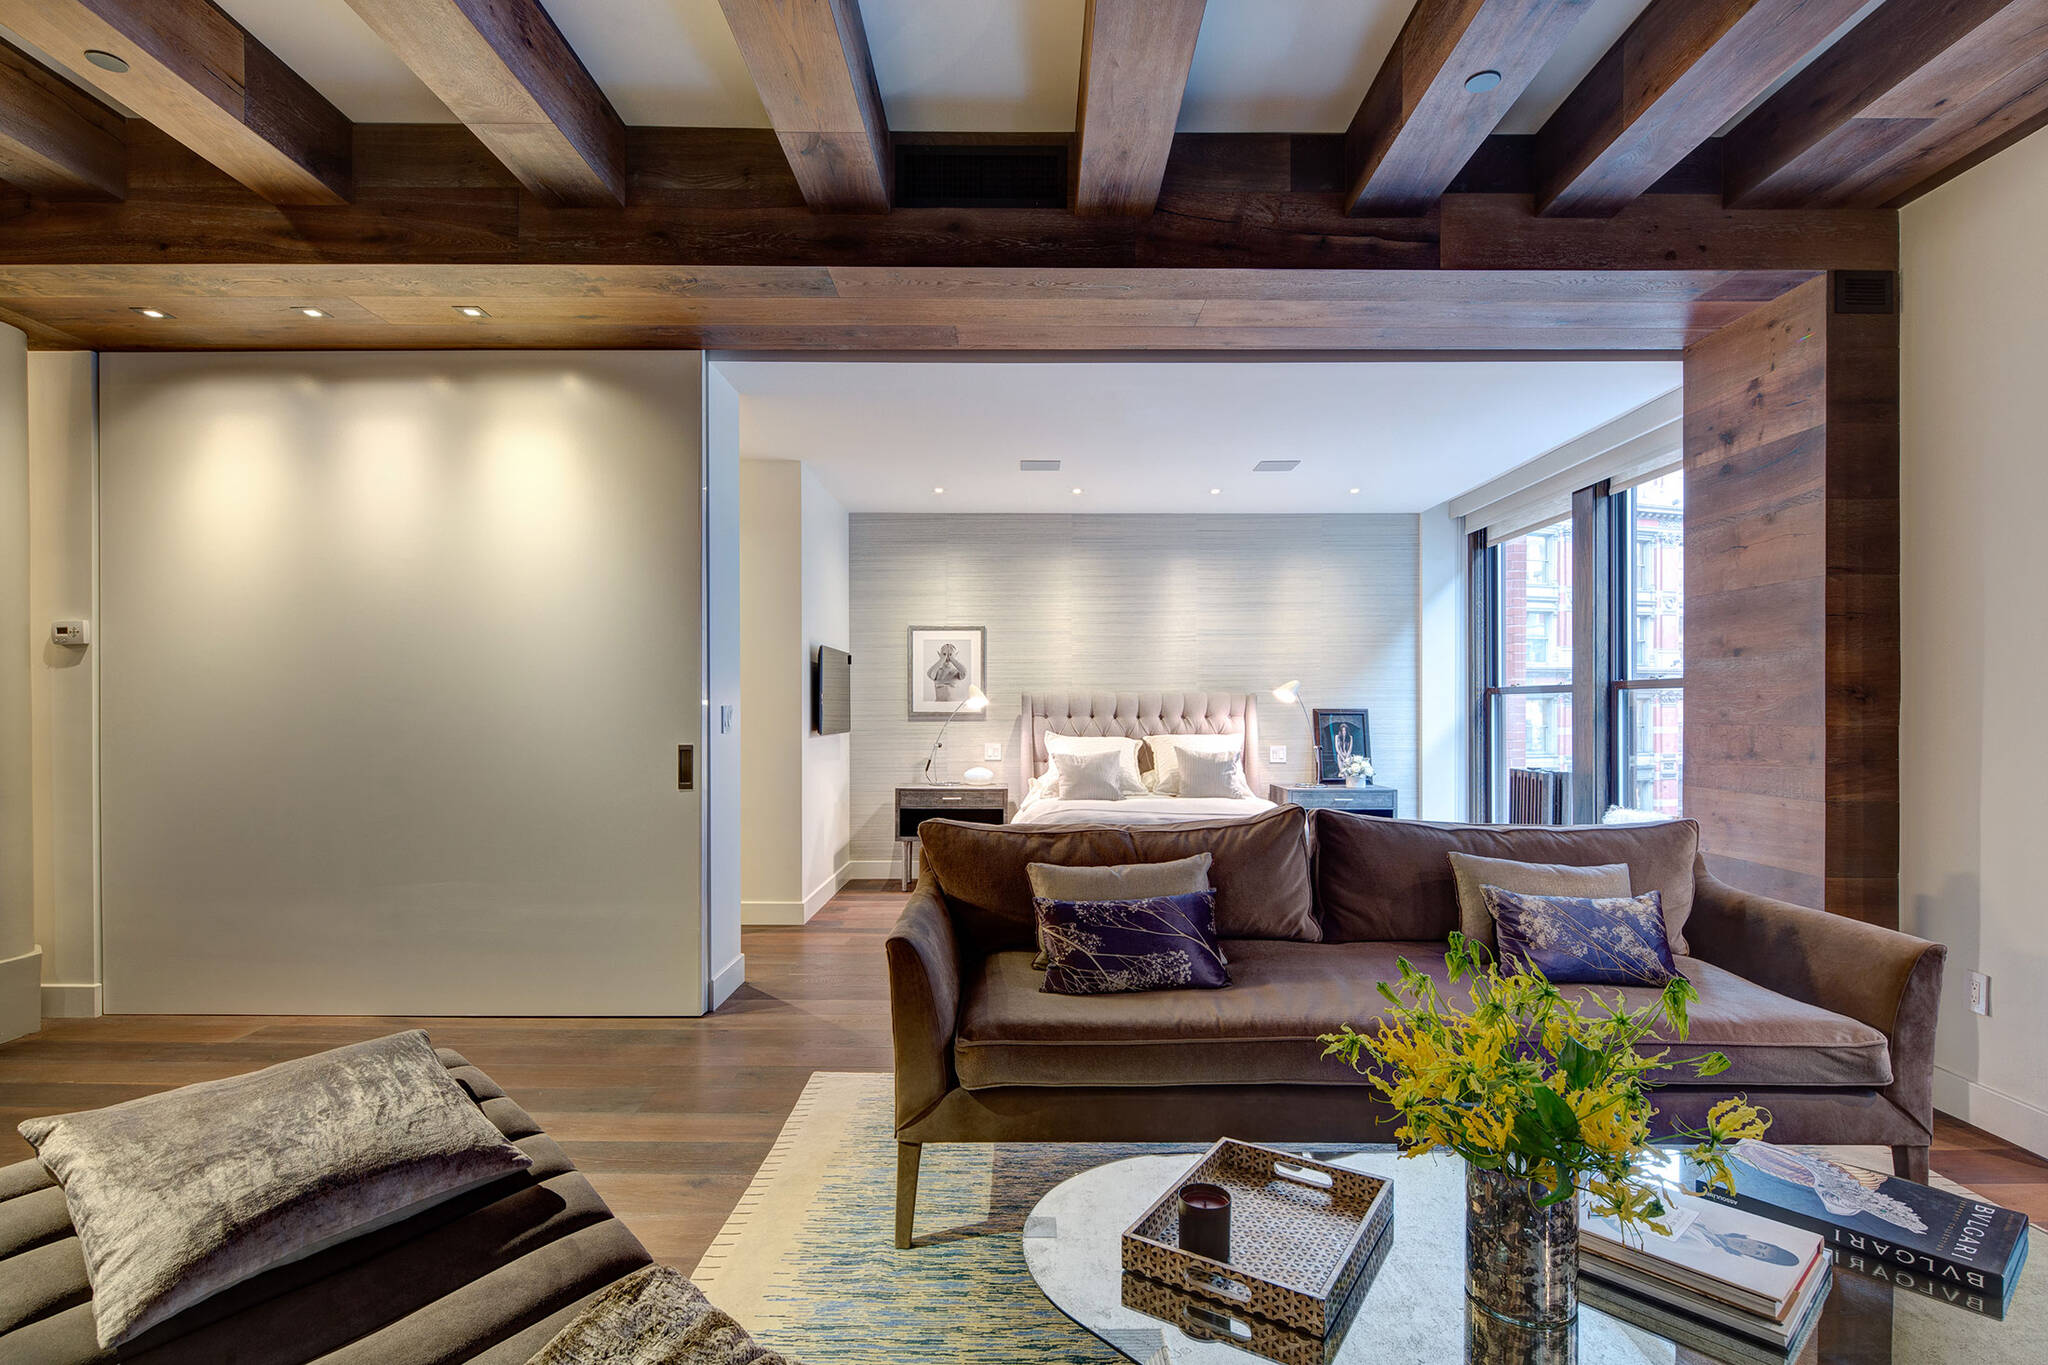 Sequence of the sliding doors dividing the space between the living room and the guest bedroom of the loft renovation project in Union Square, New York City designed by the architecture studio Danny Forster & Architecture